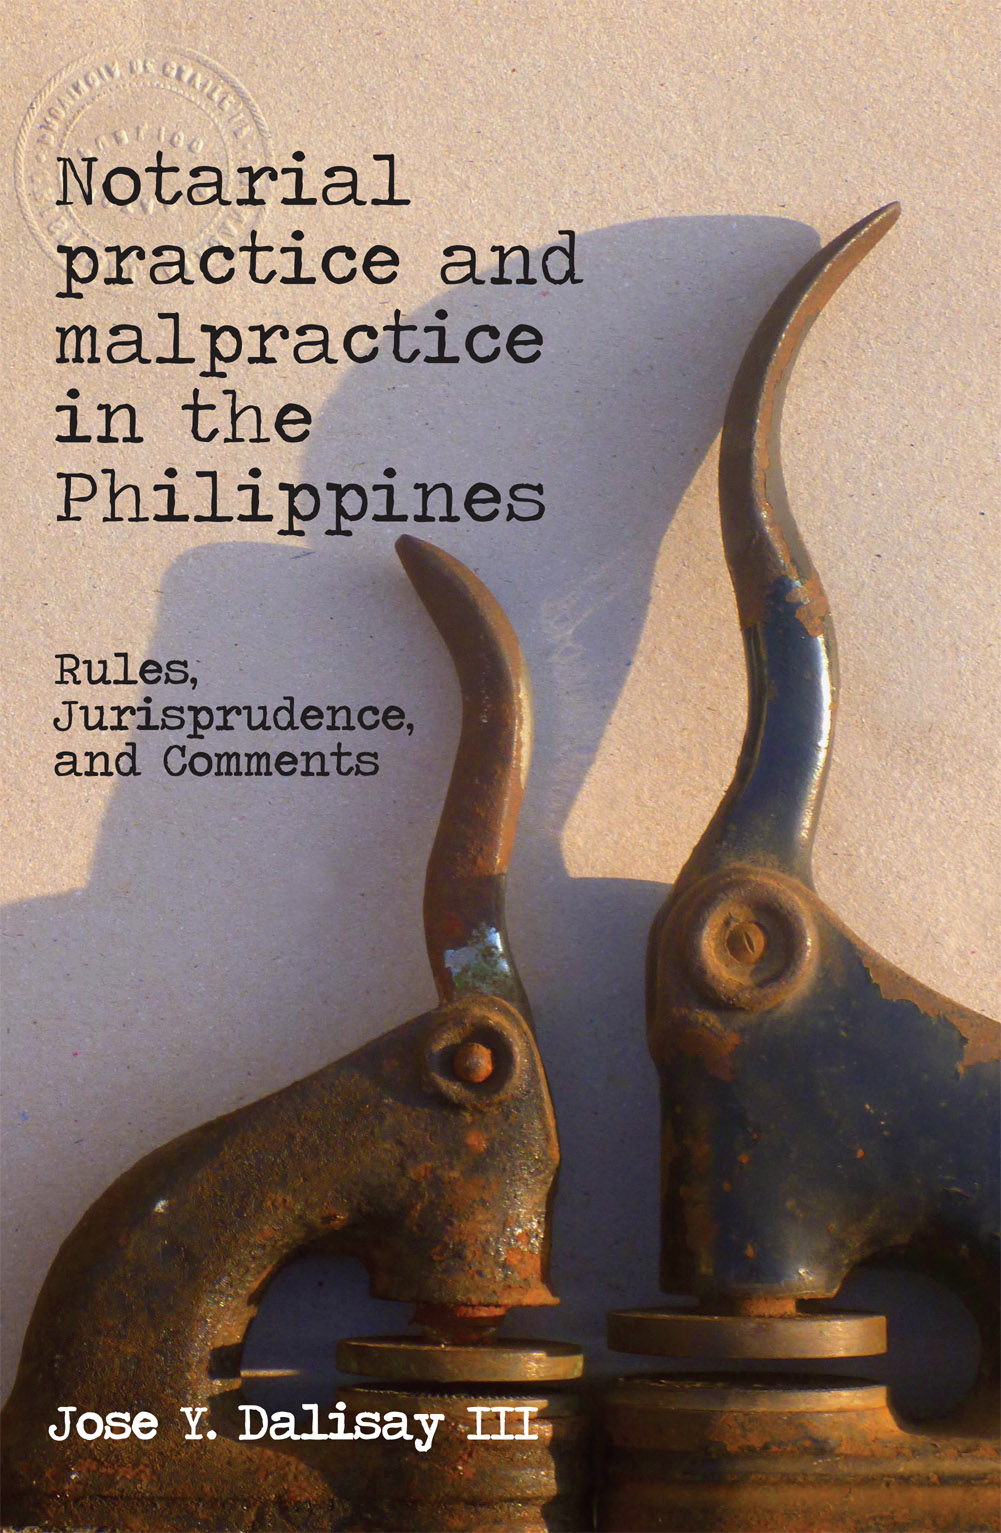 Notarial Practice and Malpractice in the Philippines: Rules, Jurisprudence, and Comments